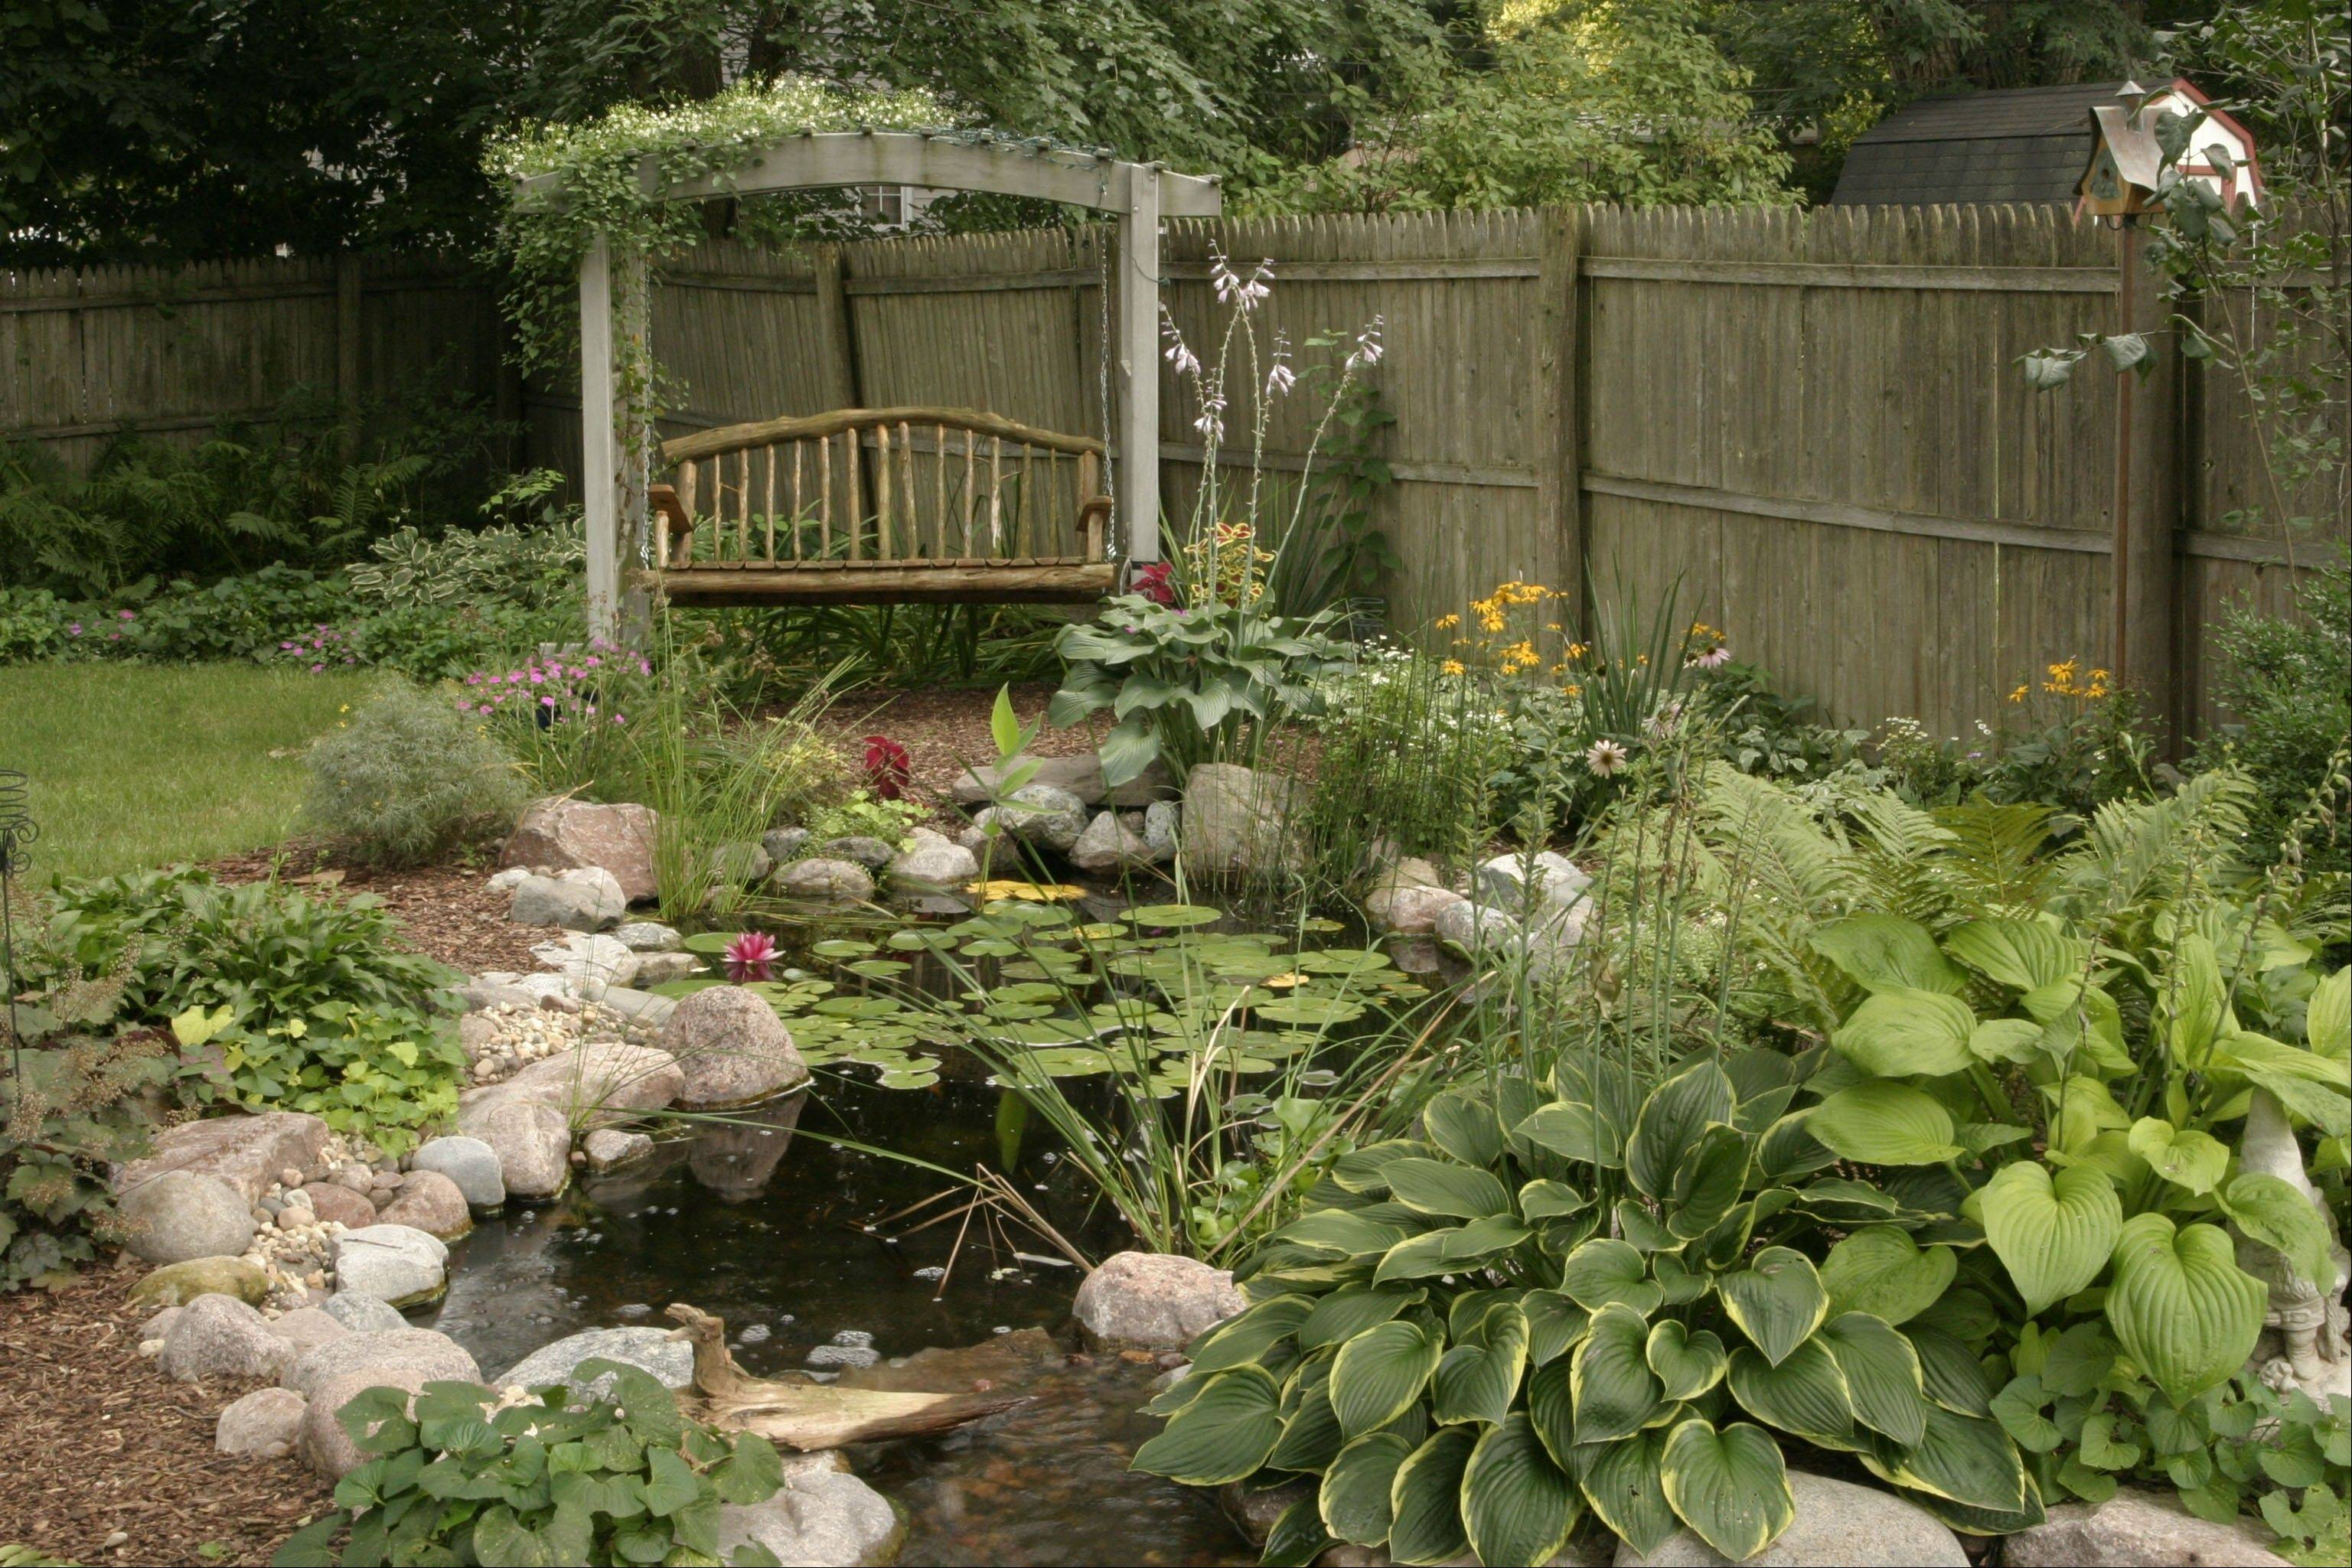 When deciding on pond placement, consider placing it near the house so that it can be enjoyed whether you're indoors or outdoors.